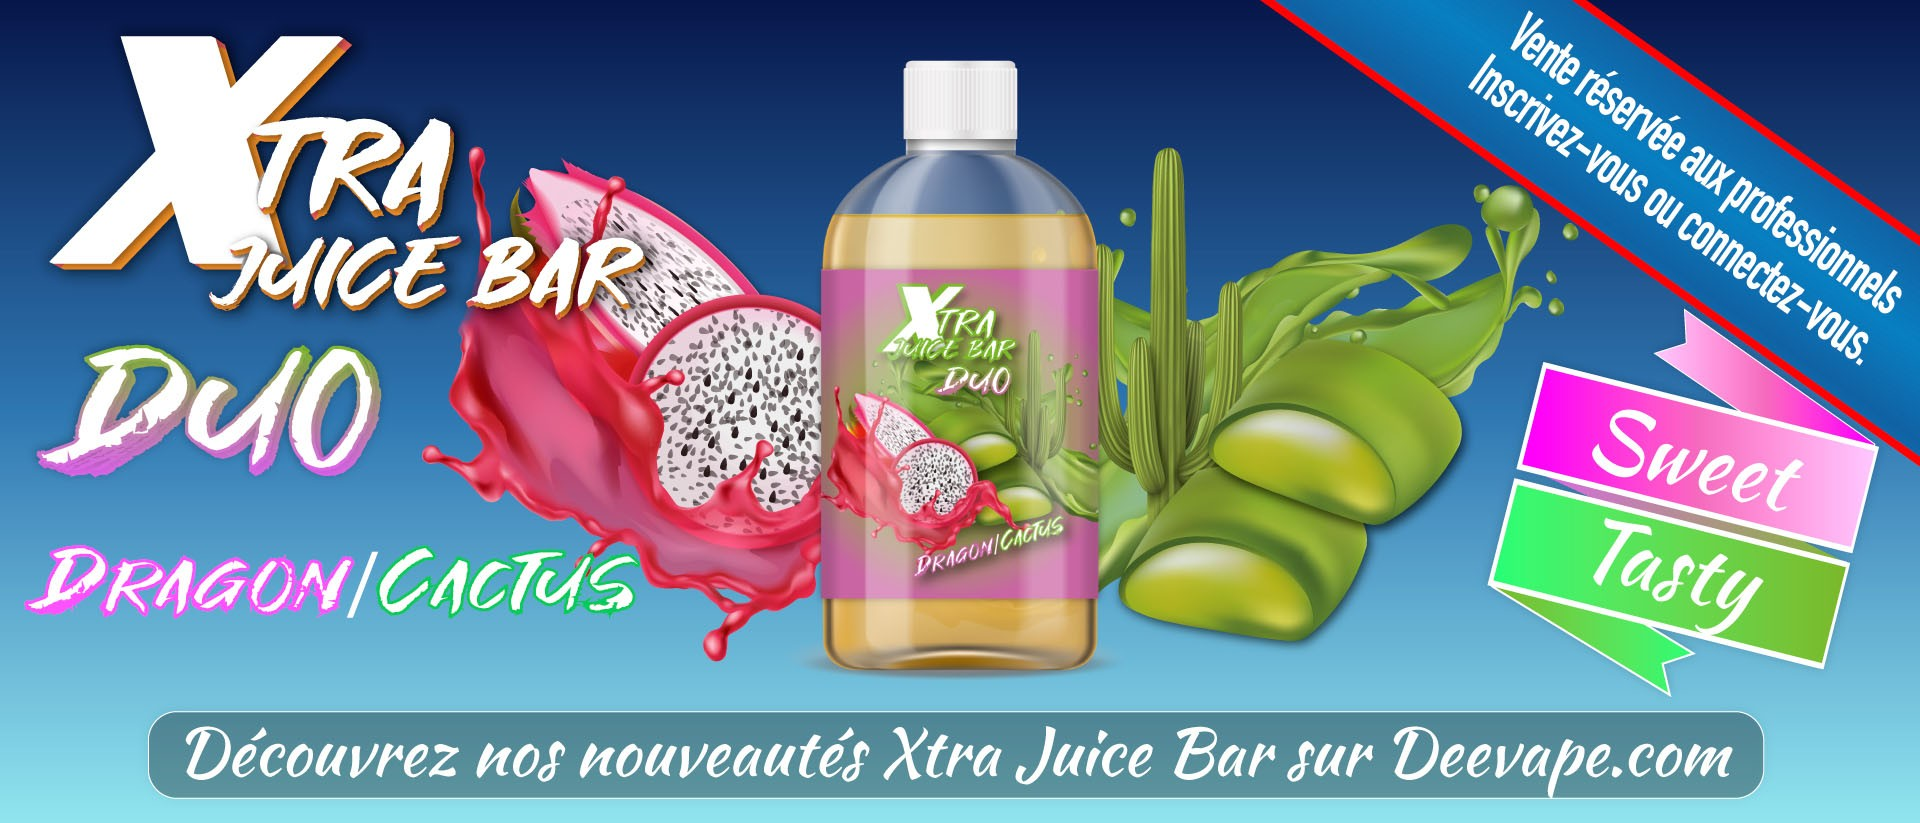 XTRA JUICE BAR DUO - DRAGON/CACTUS